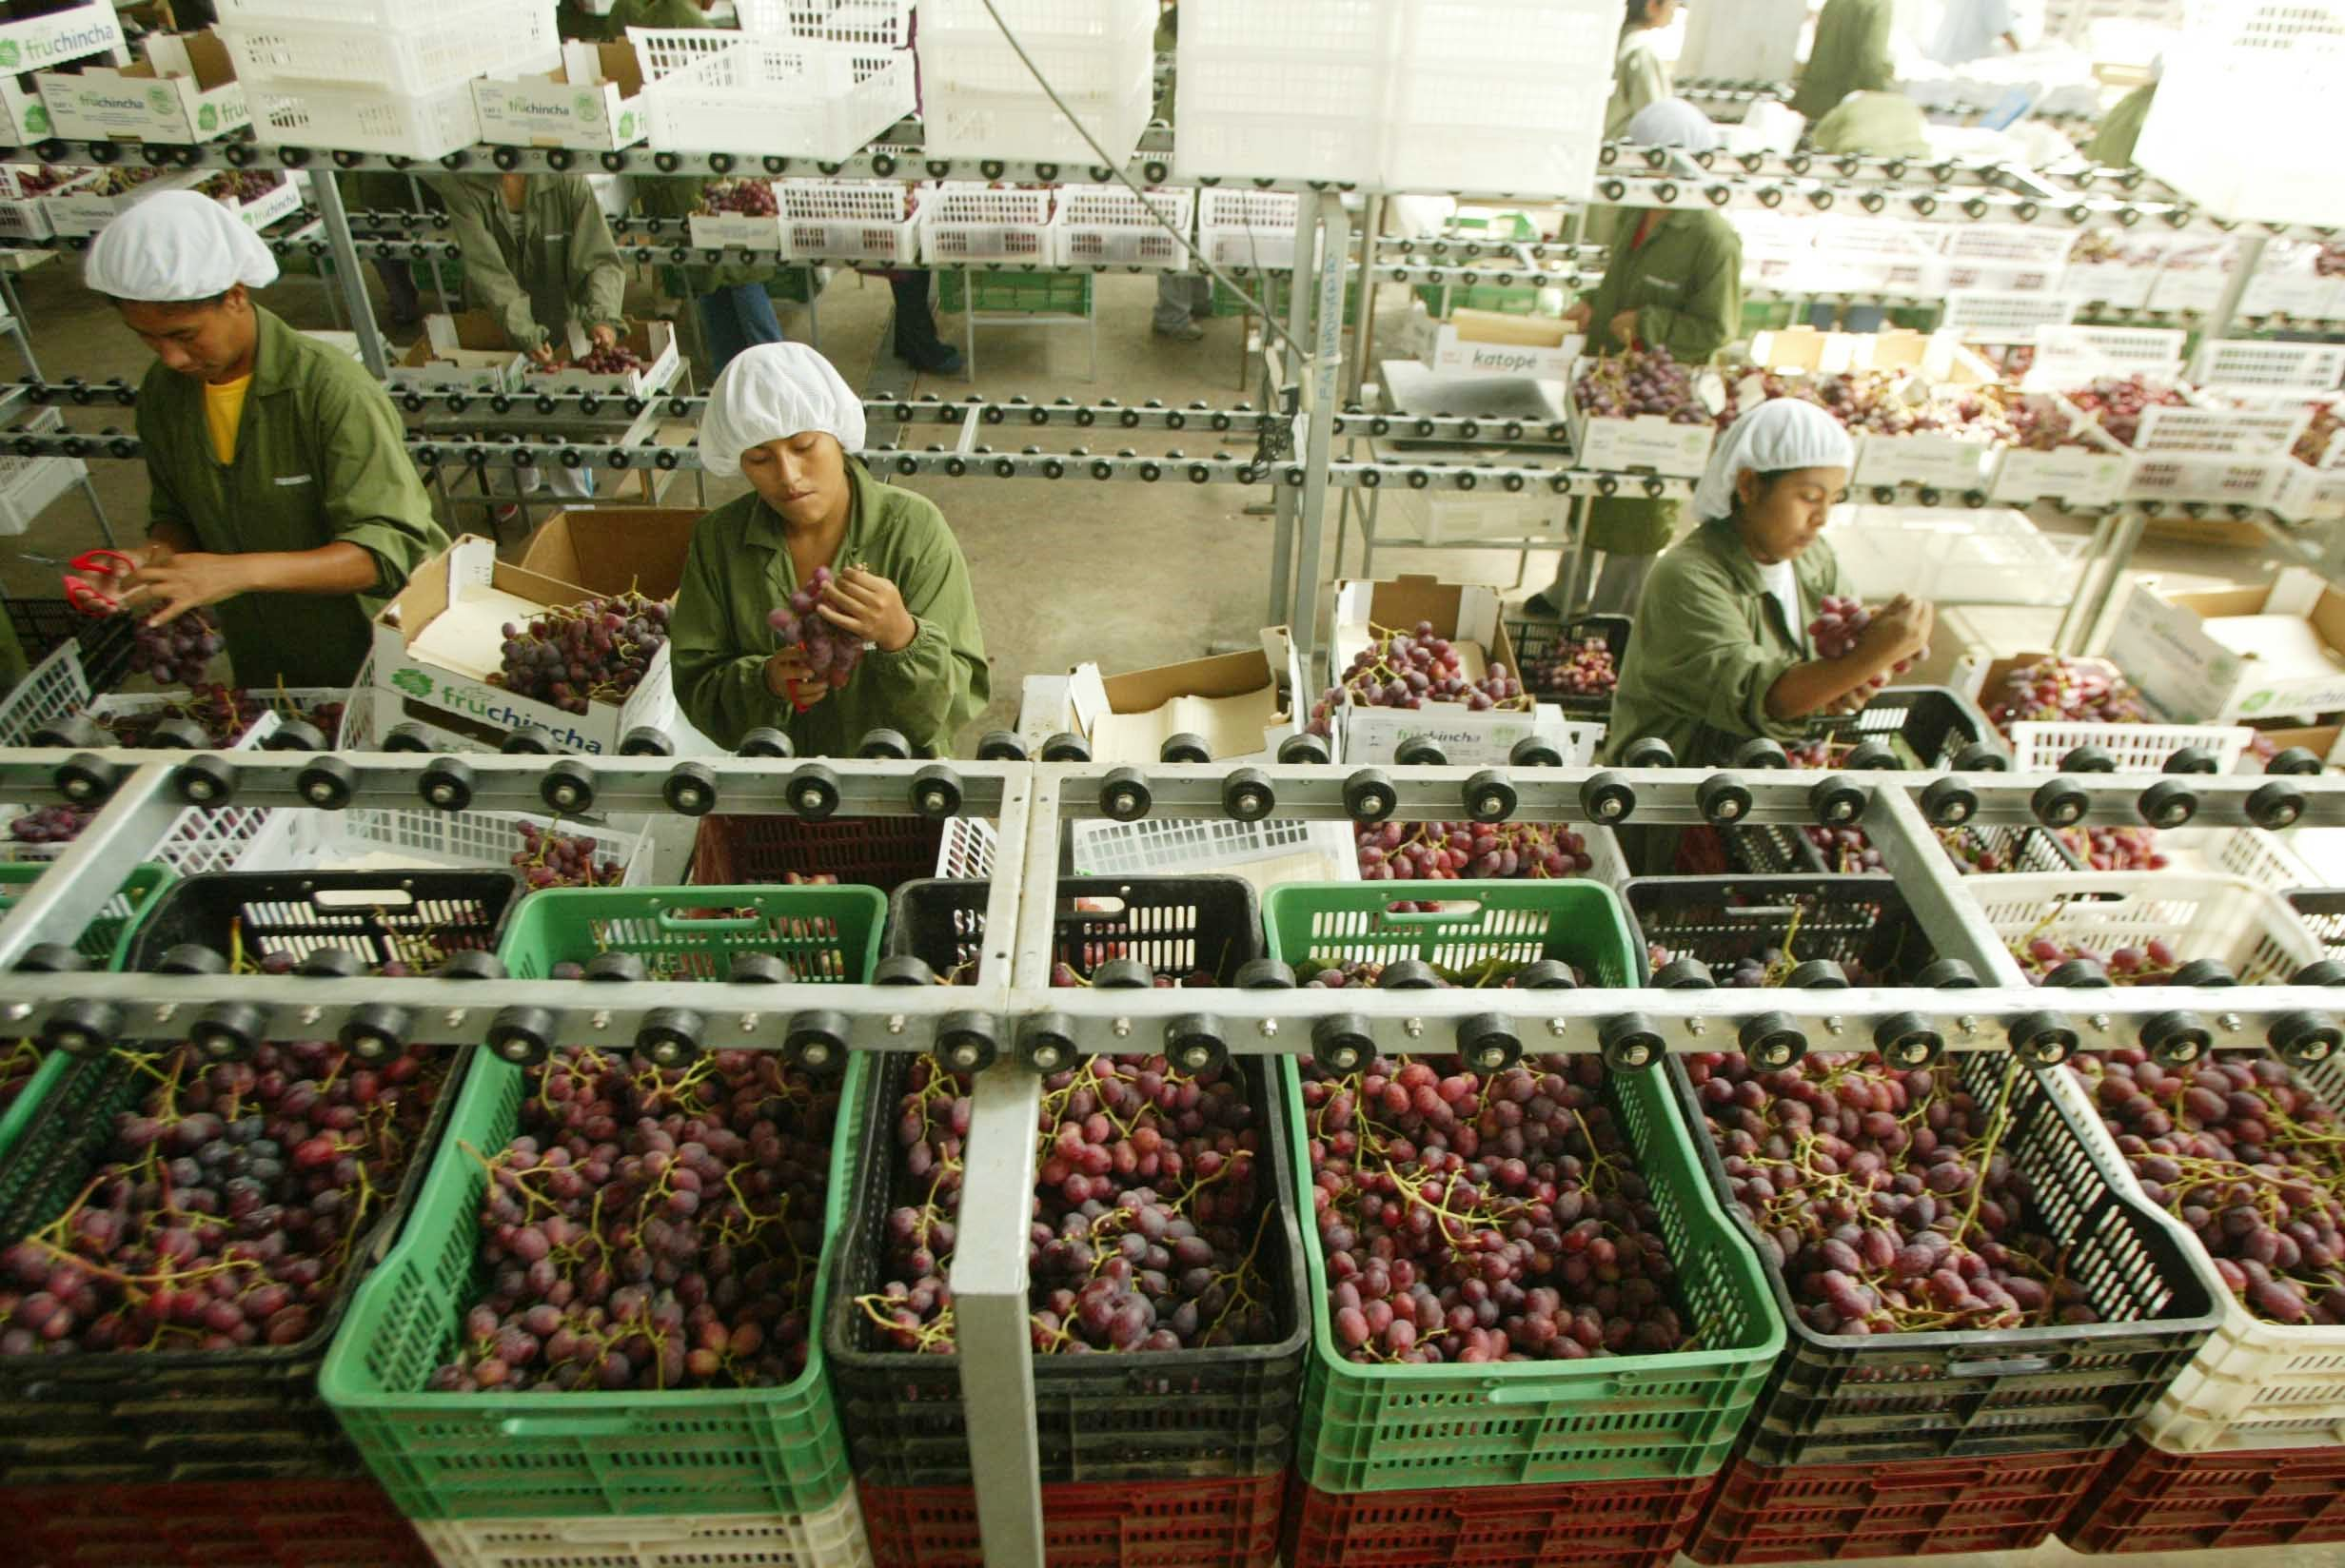 Dip in Peru's agrifood exports © ADEX